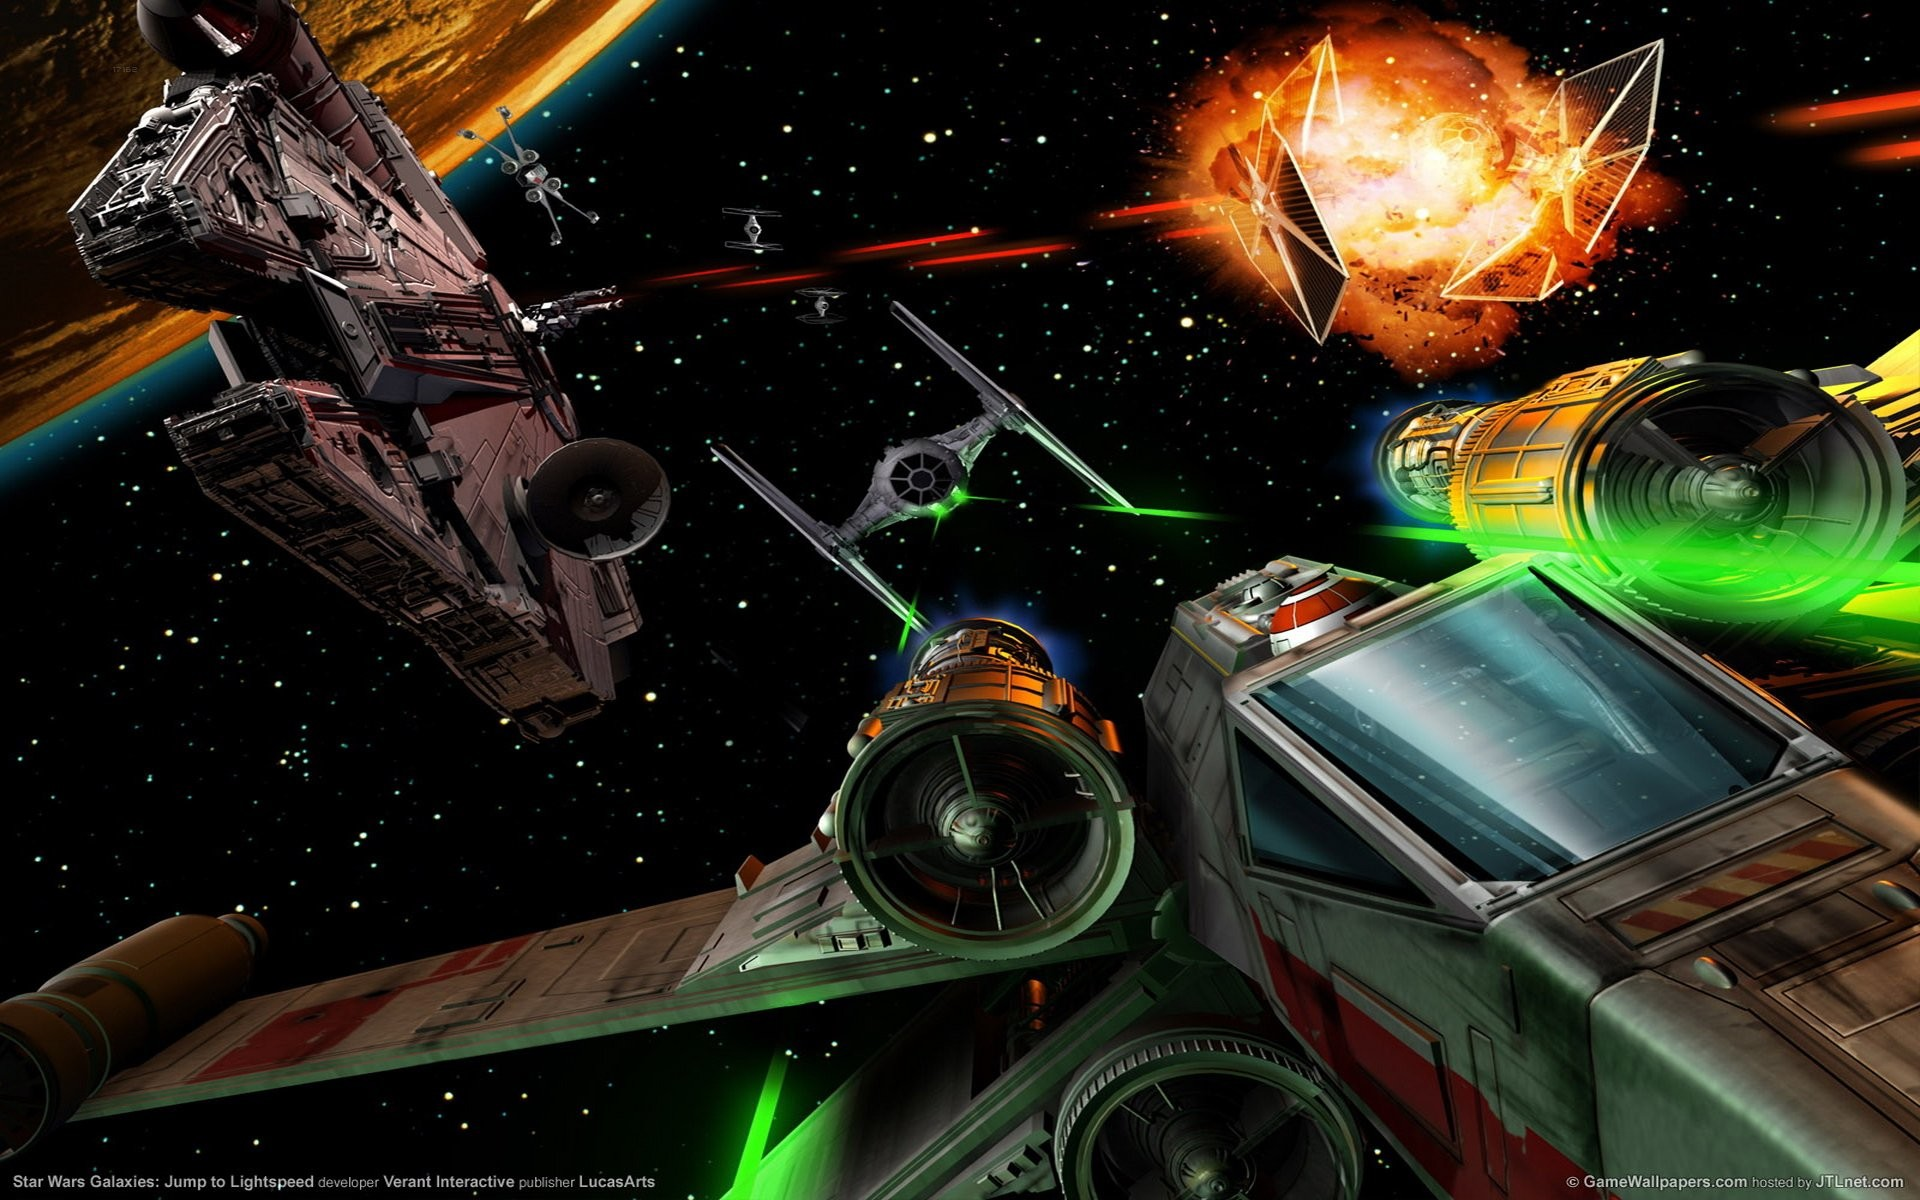 Star Wars Space Background 69 Images